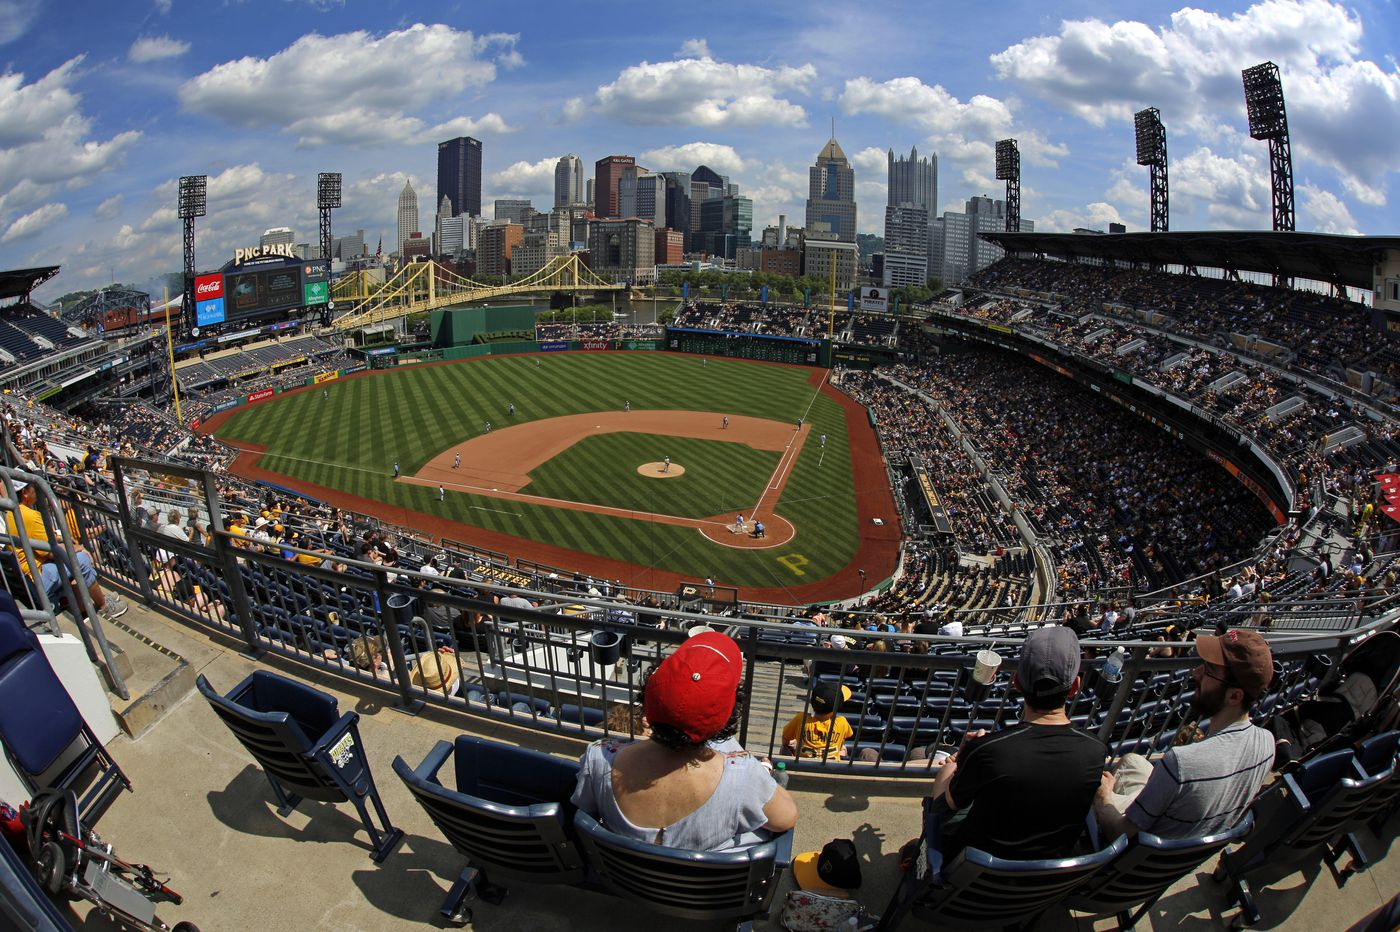 For Phillies, PNC Park has been a torture chamber | Extra Innings